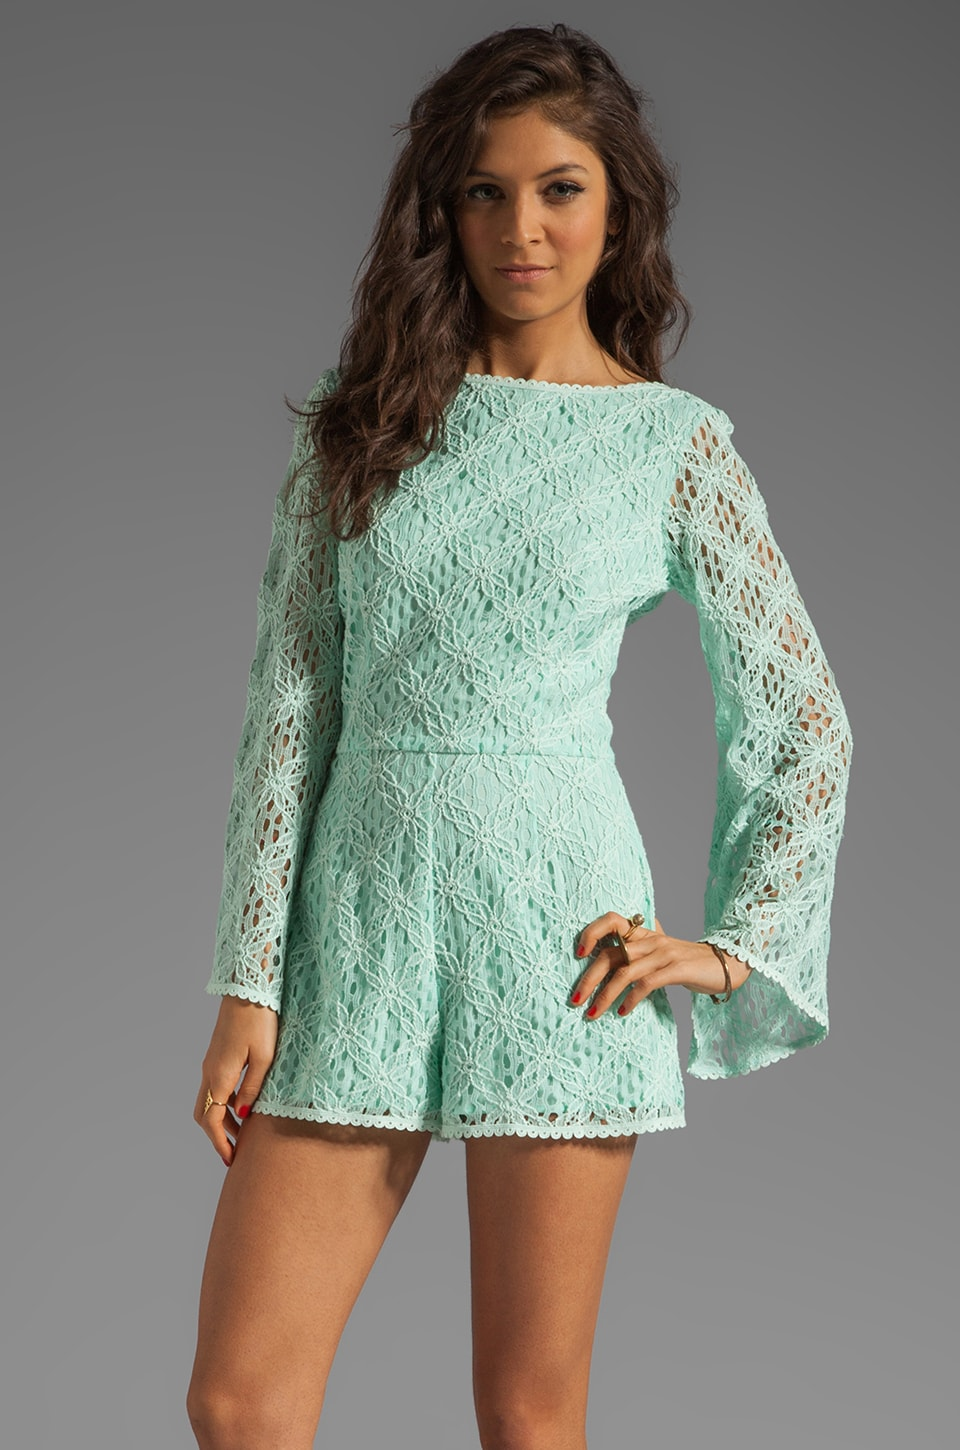 Dolce Vita Seni Crochet Lace Romper in Mint